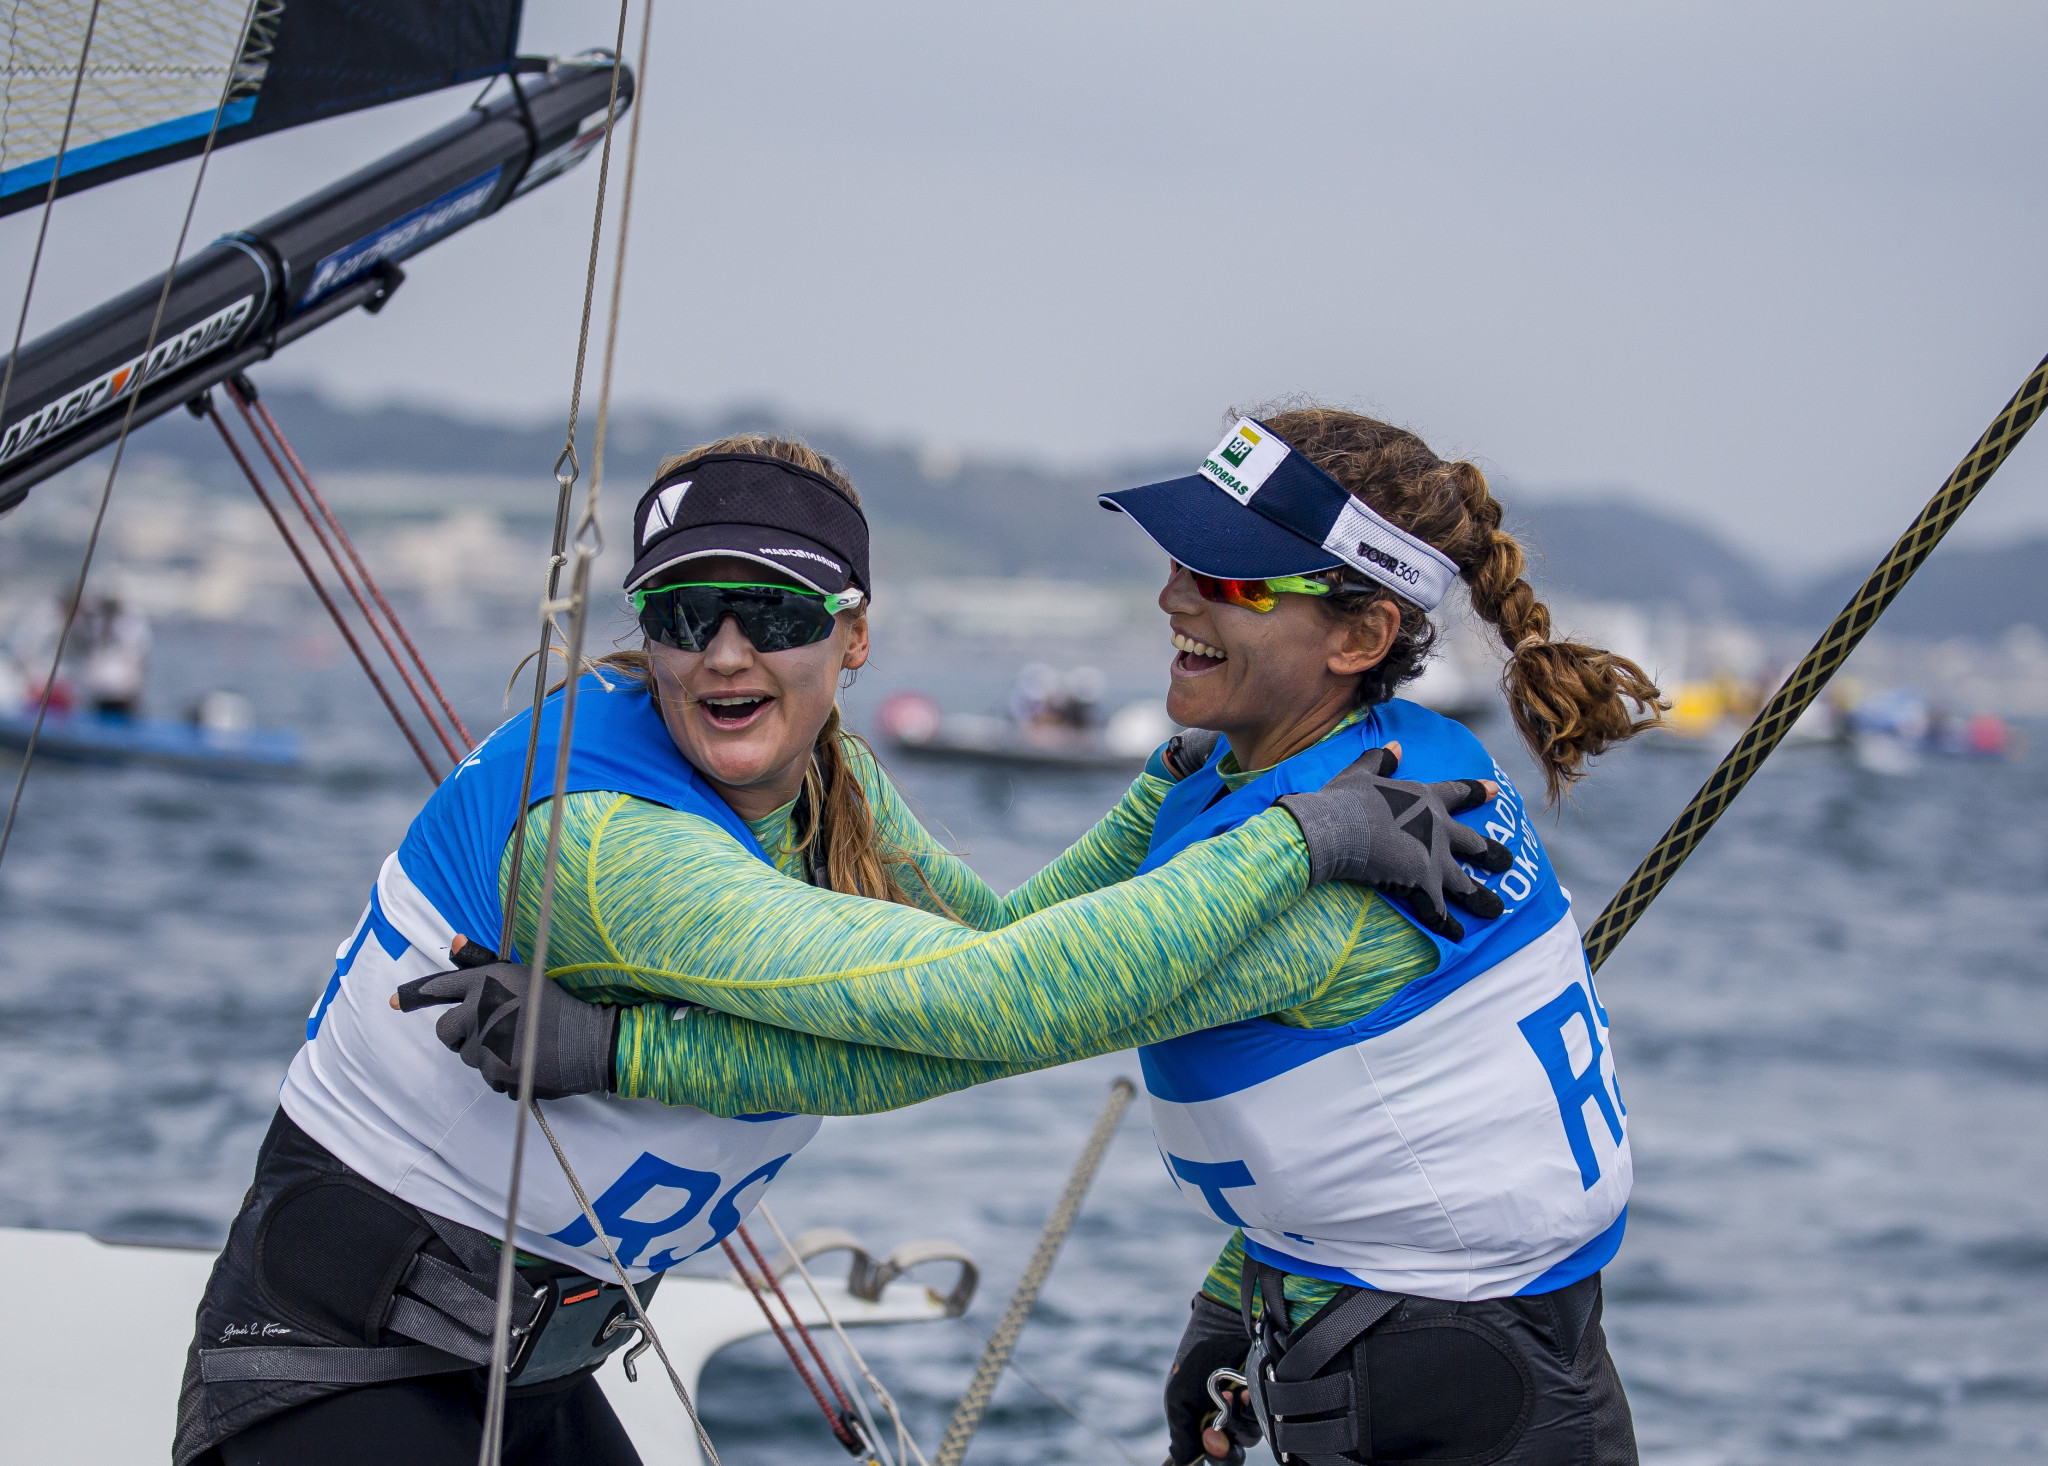 Rio 2016 champions strike gold at Tokyo 2020 sailing test event